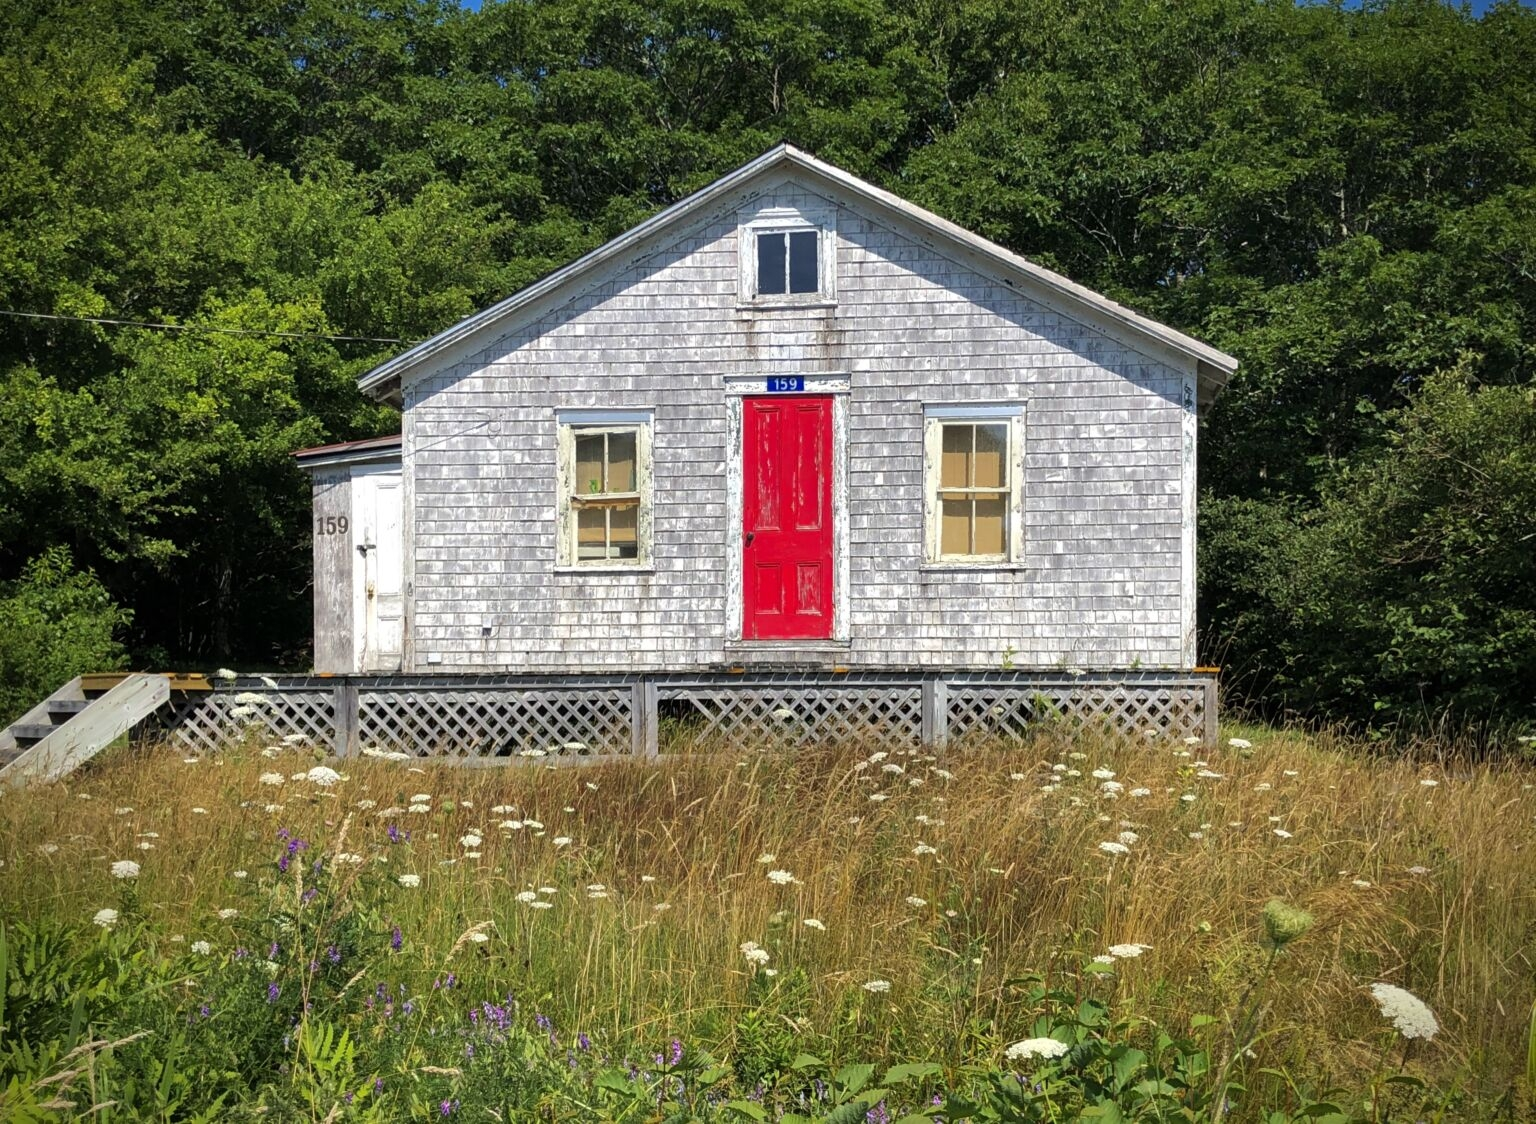 Small cottage with bright red door.